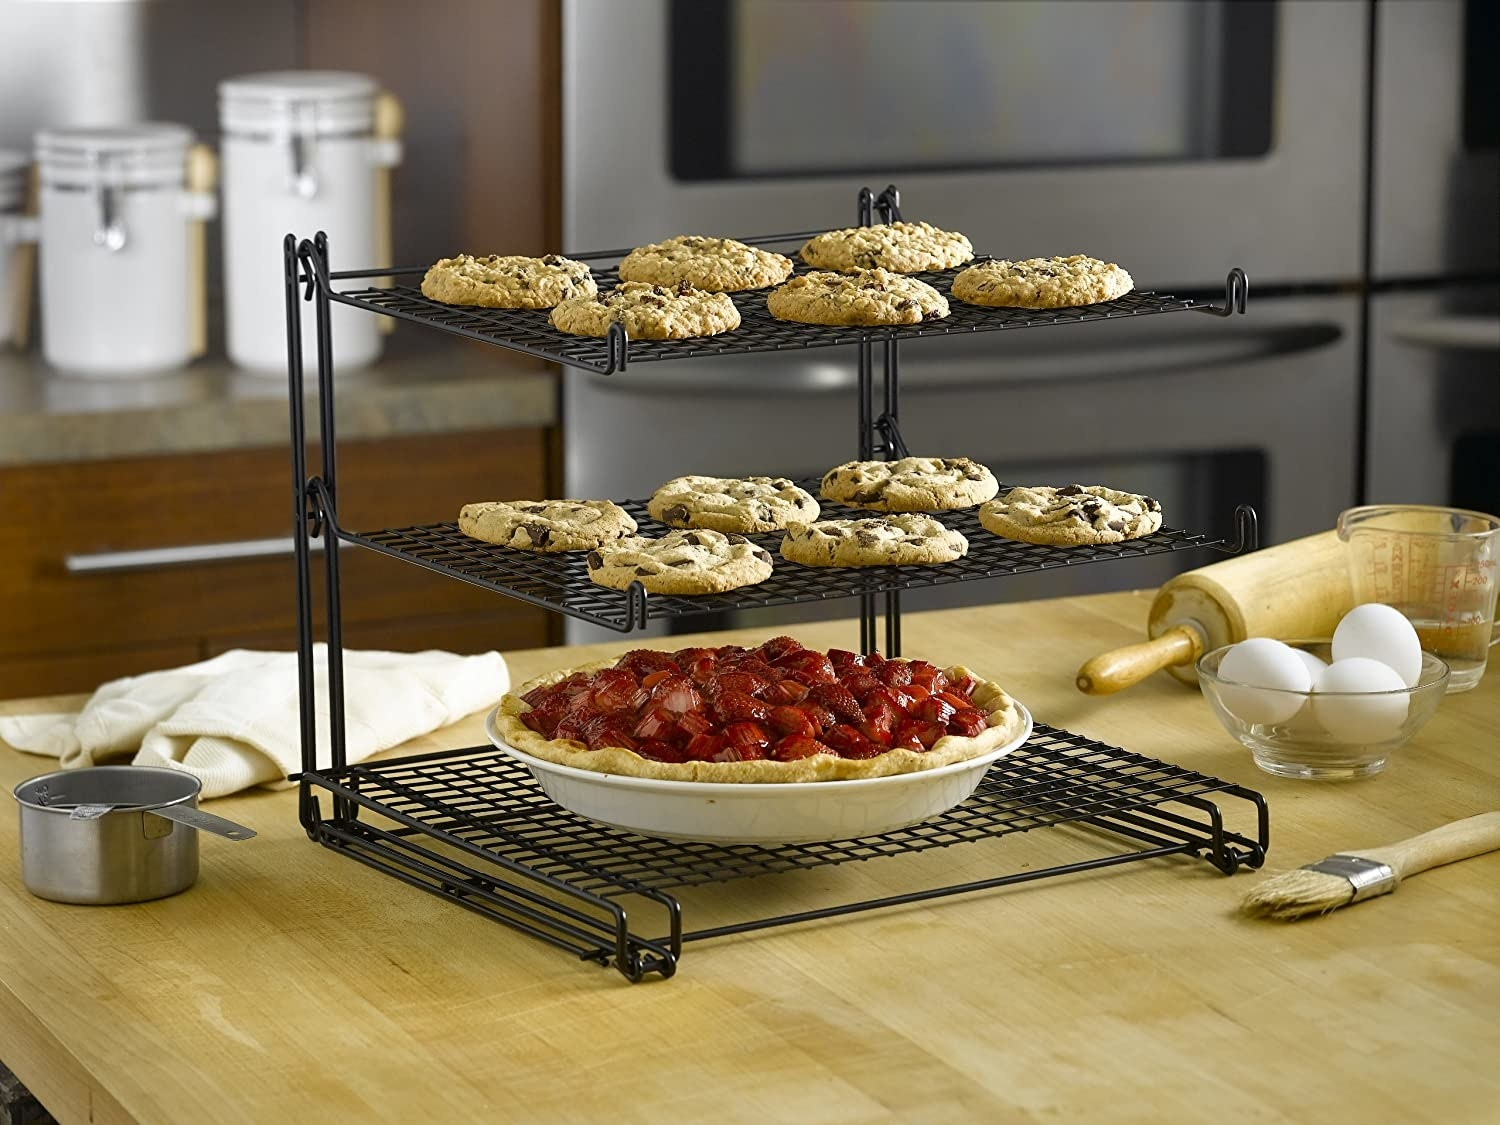 the black three tiered wire rack